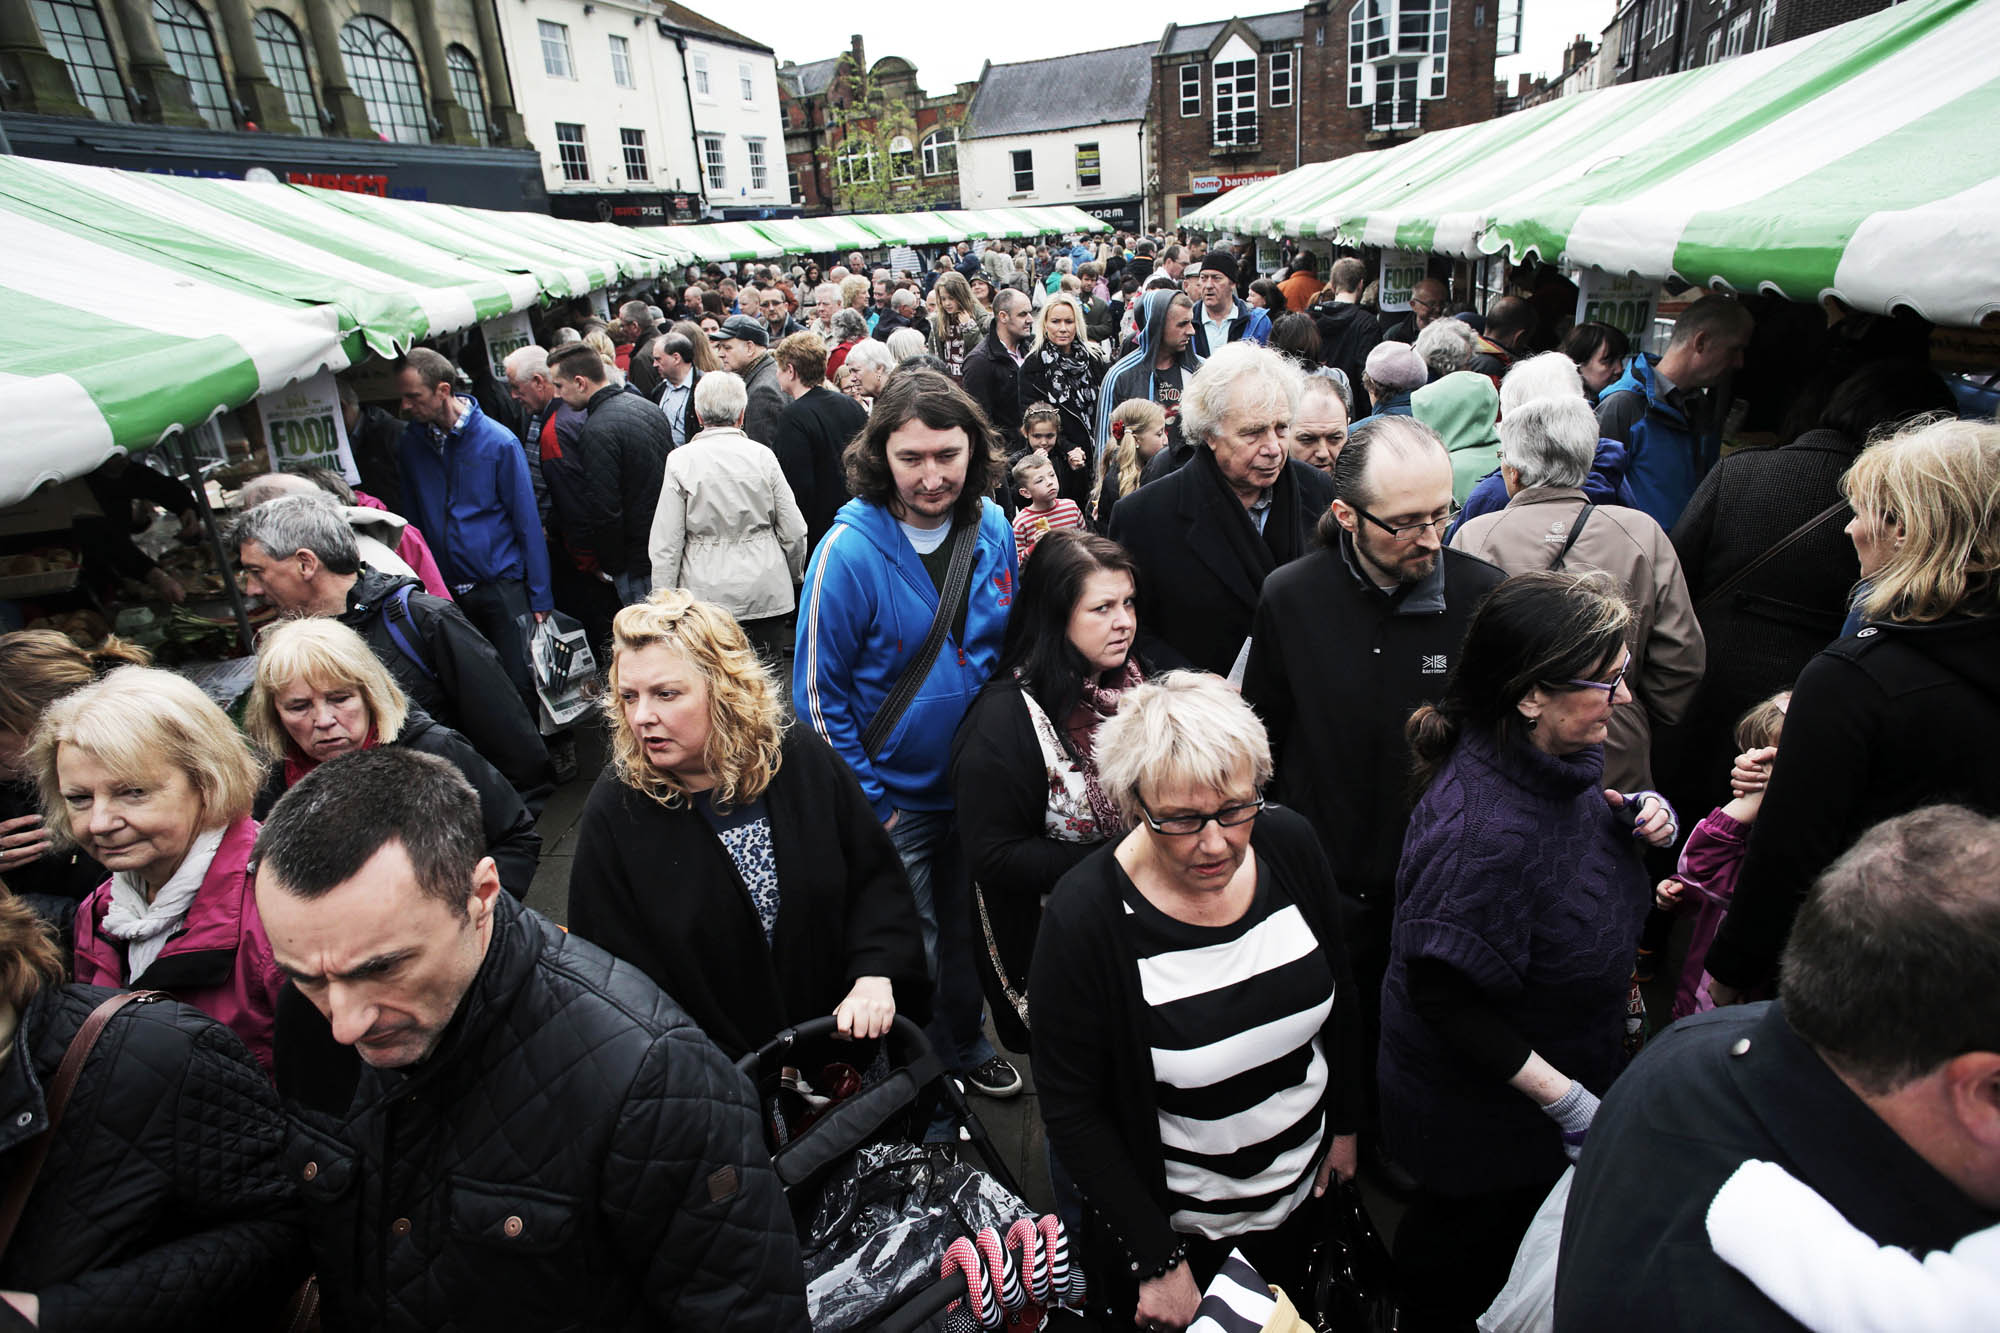 20,000 visitors enjoy culinary delights of Bishop Auckland Food Festival